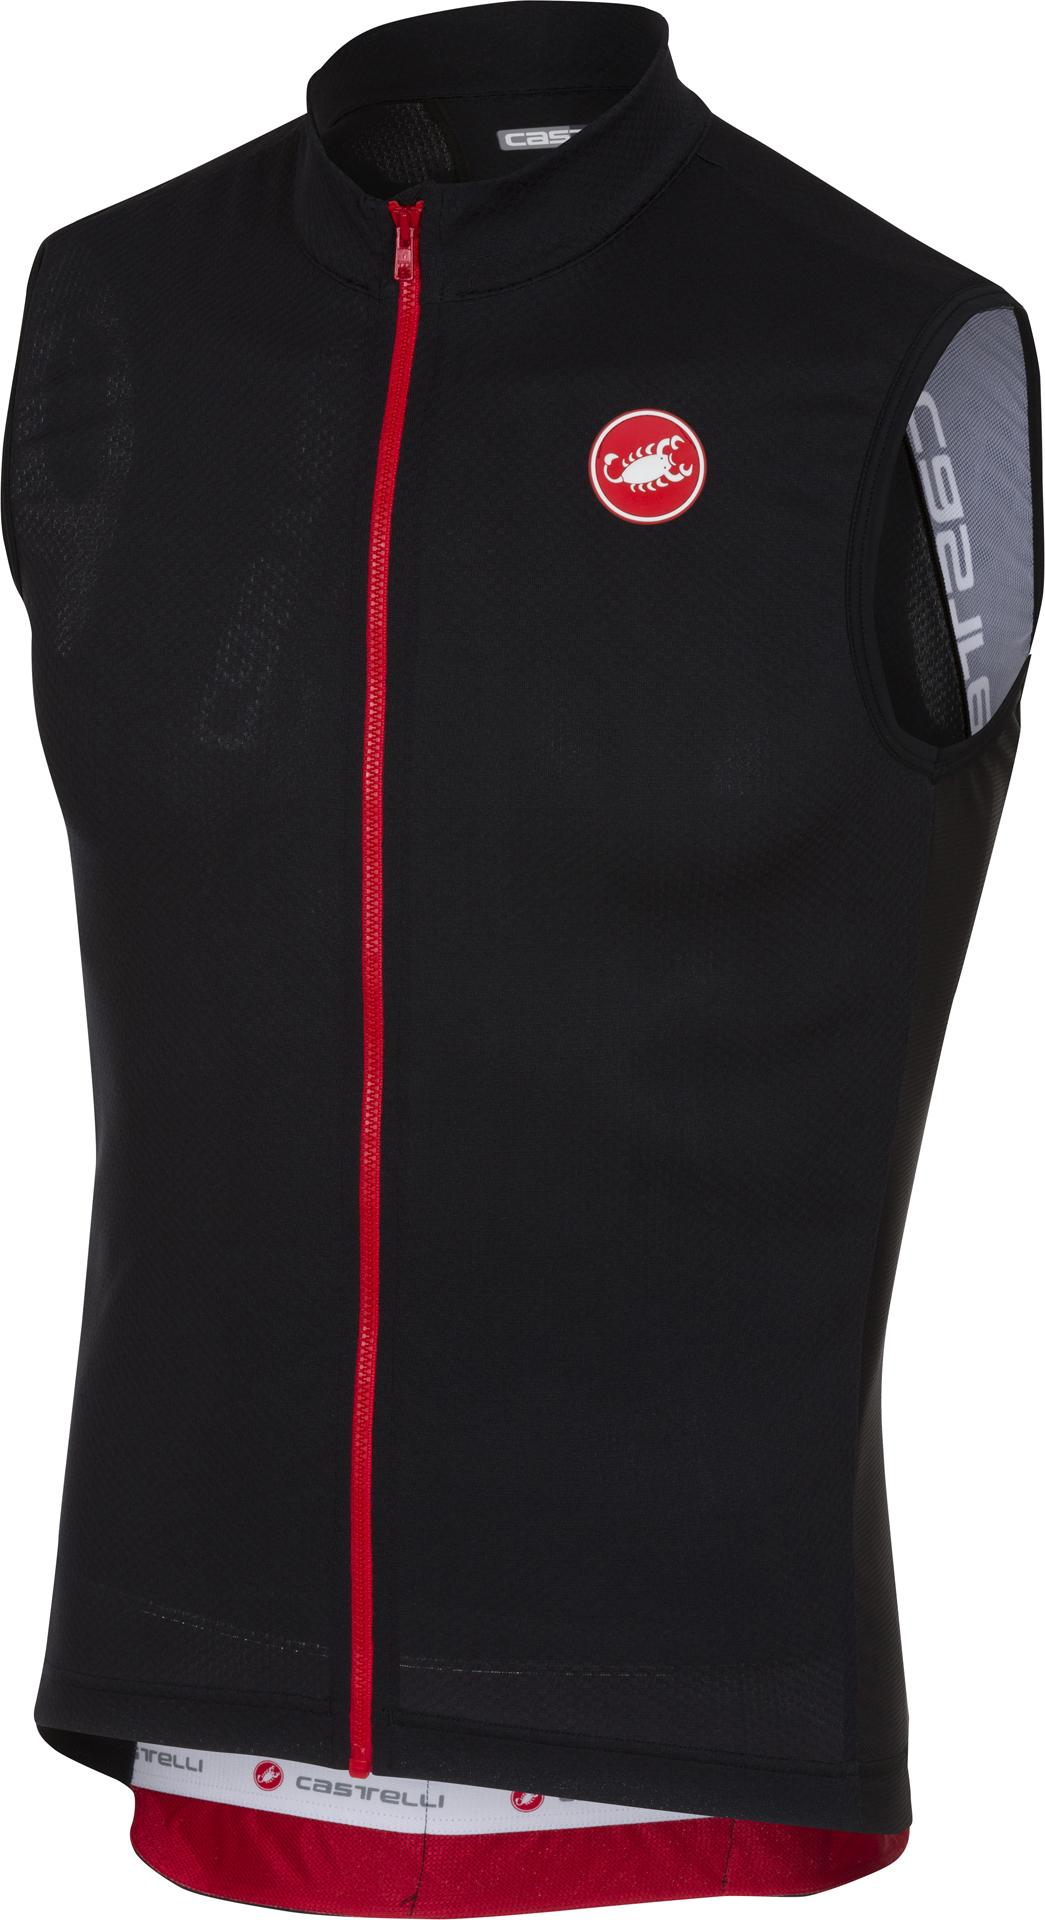 | Castelli Fietsshirt Heren Zwart / CA Entrata 3 Sleeveless FZ Light Black